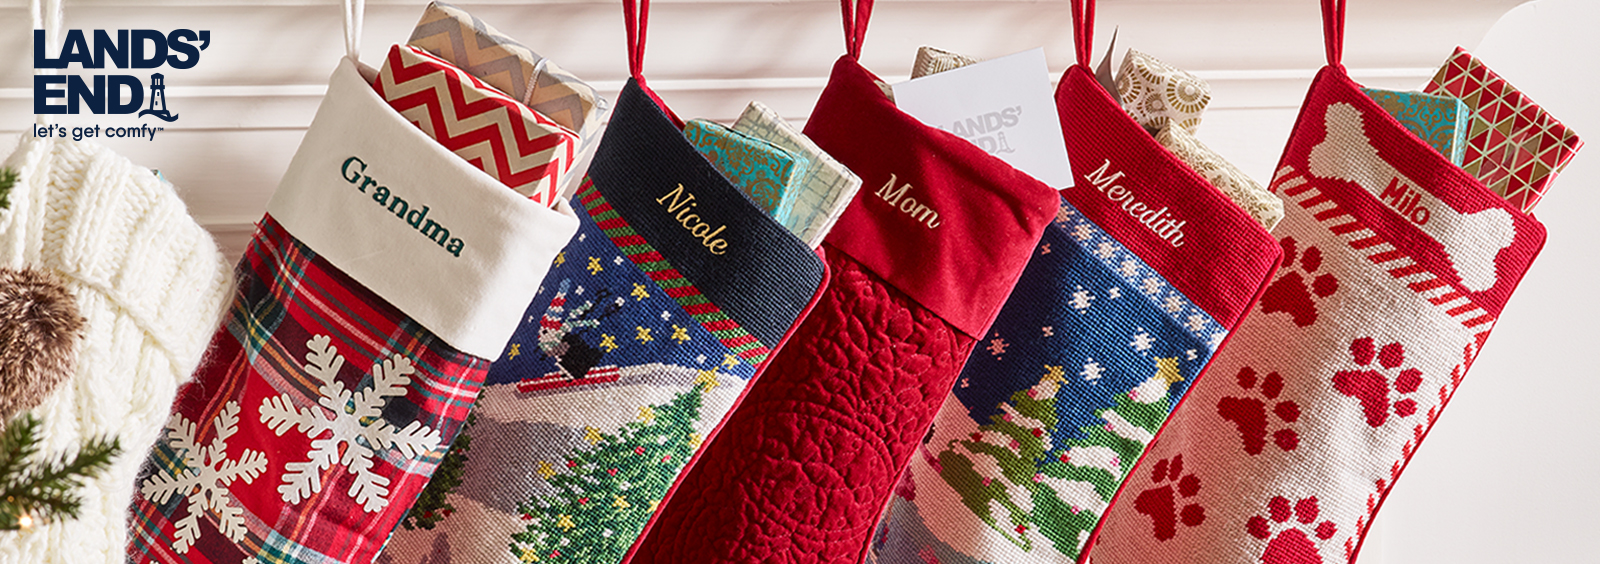 Cute Stocking Stuffers for the Entire Family